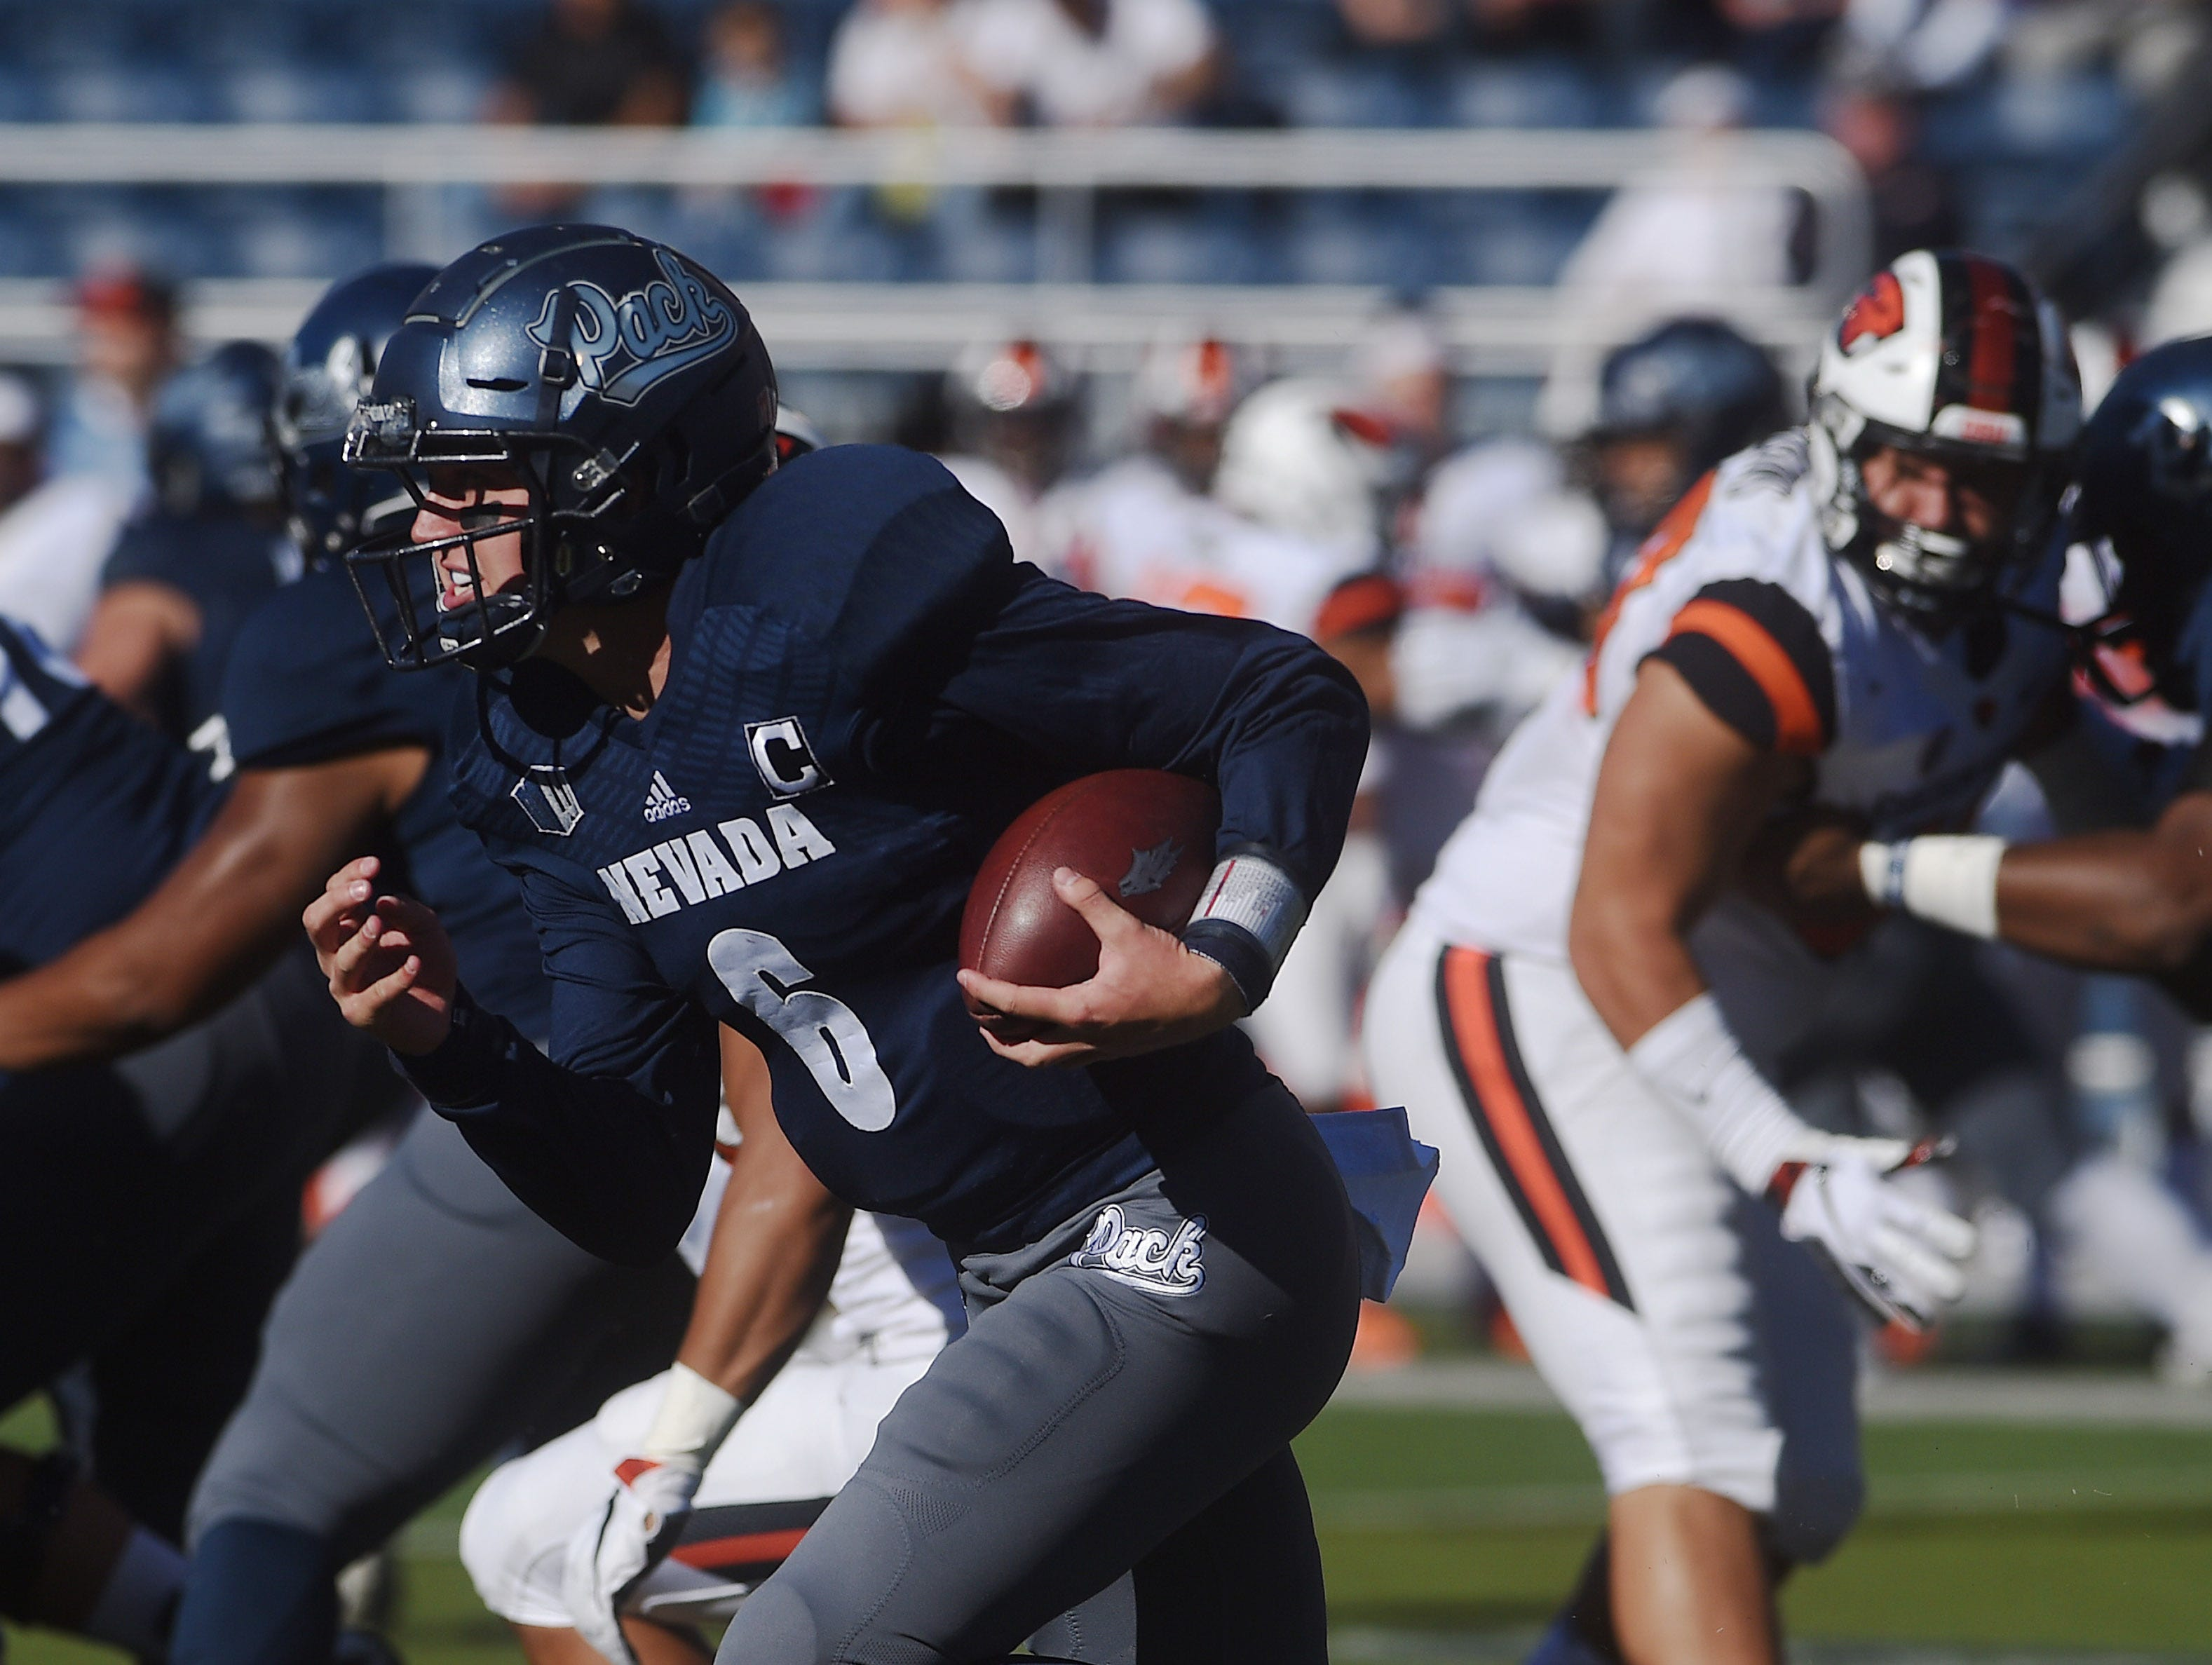 Nevada's Ty Gangi (6) looks for room to run while taking on Oregon State during their football game at Mackay Stadium in Reno on Sept. 15, 2018.